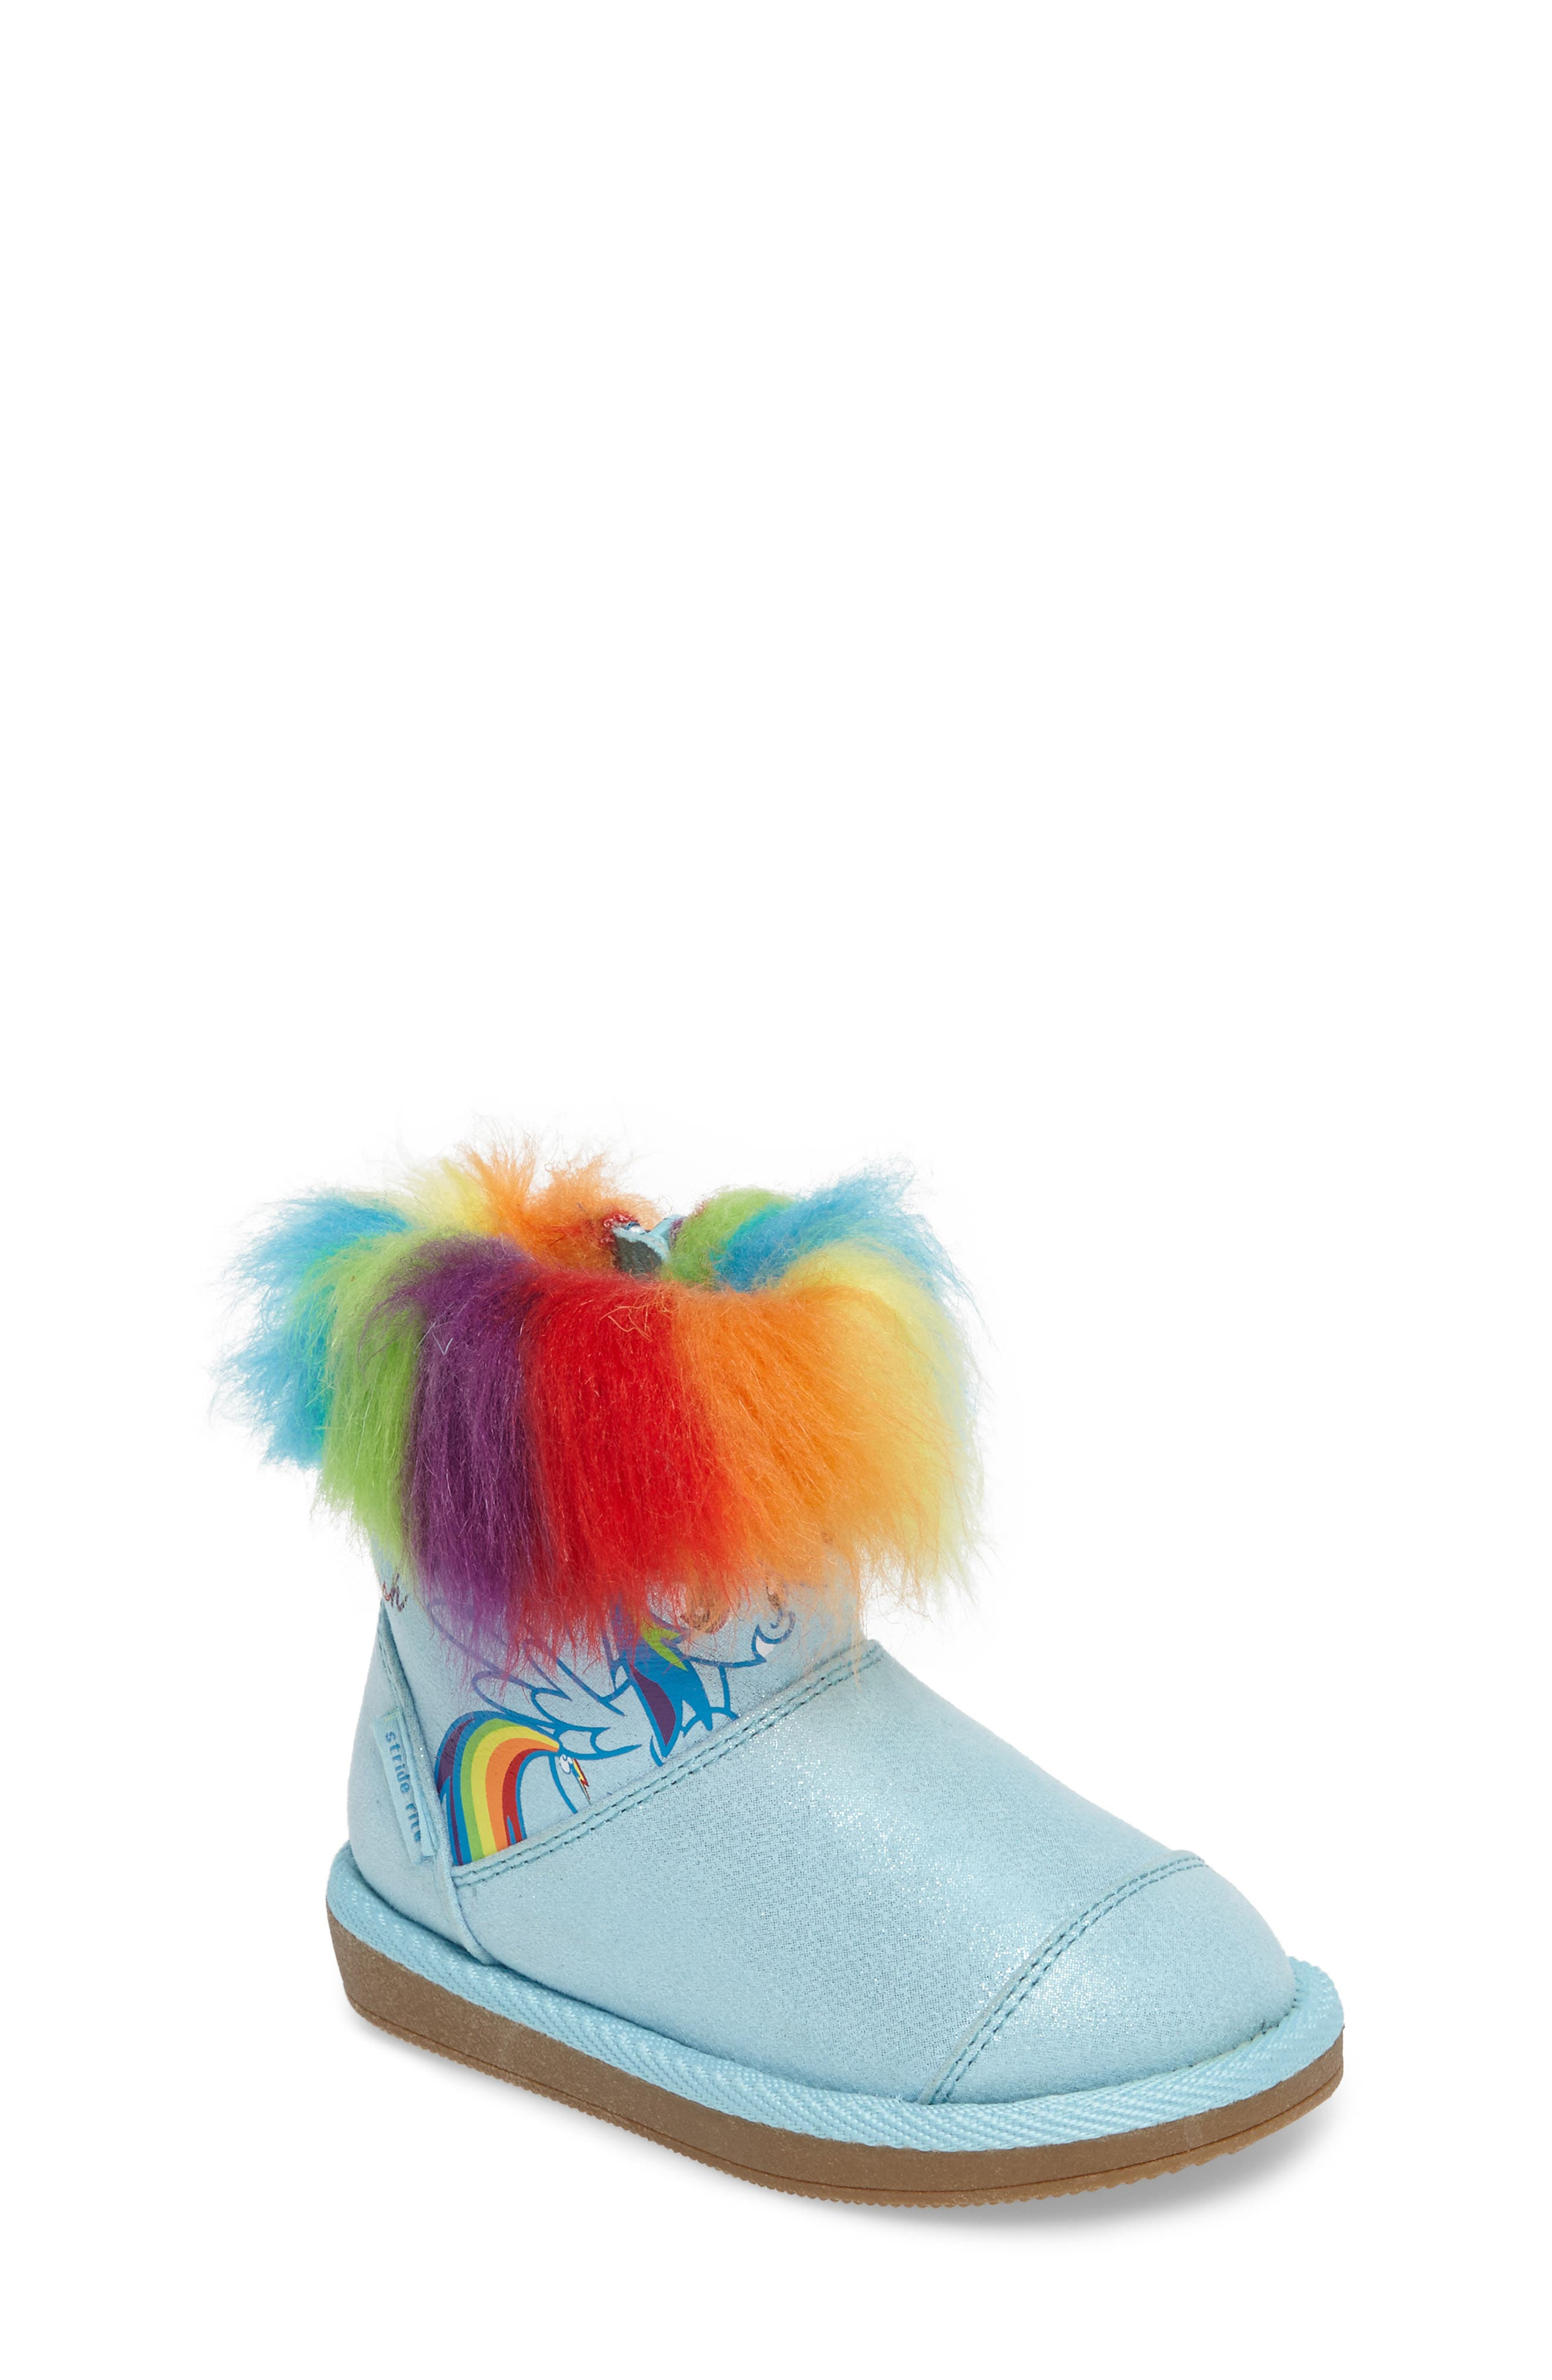 My Little Pony<sup>®</sup> Rainbow Dash Boot,                             Main thumbnail 1, color,                             400